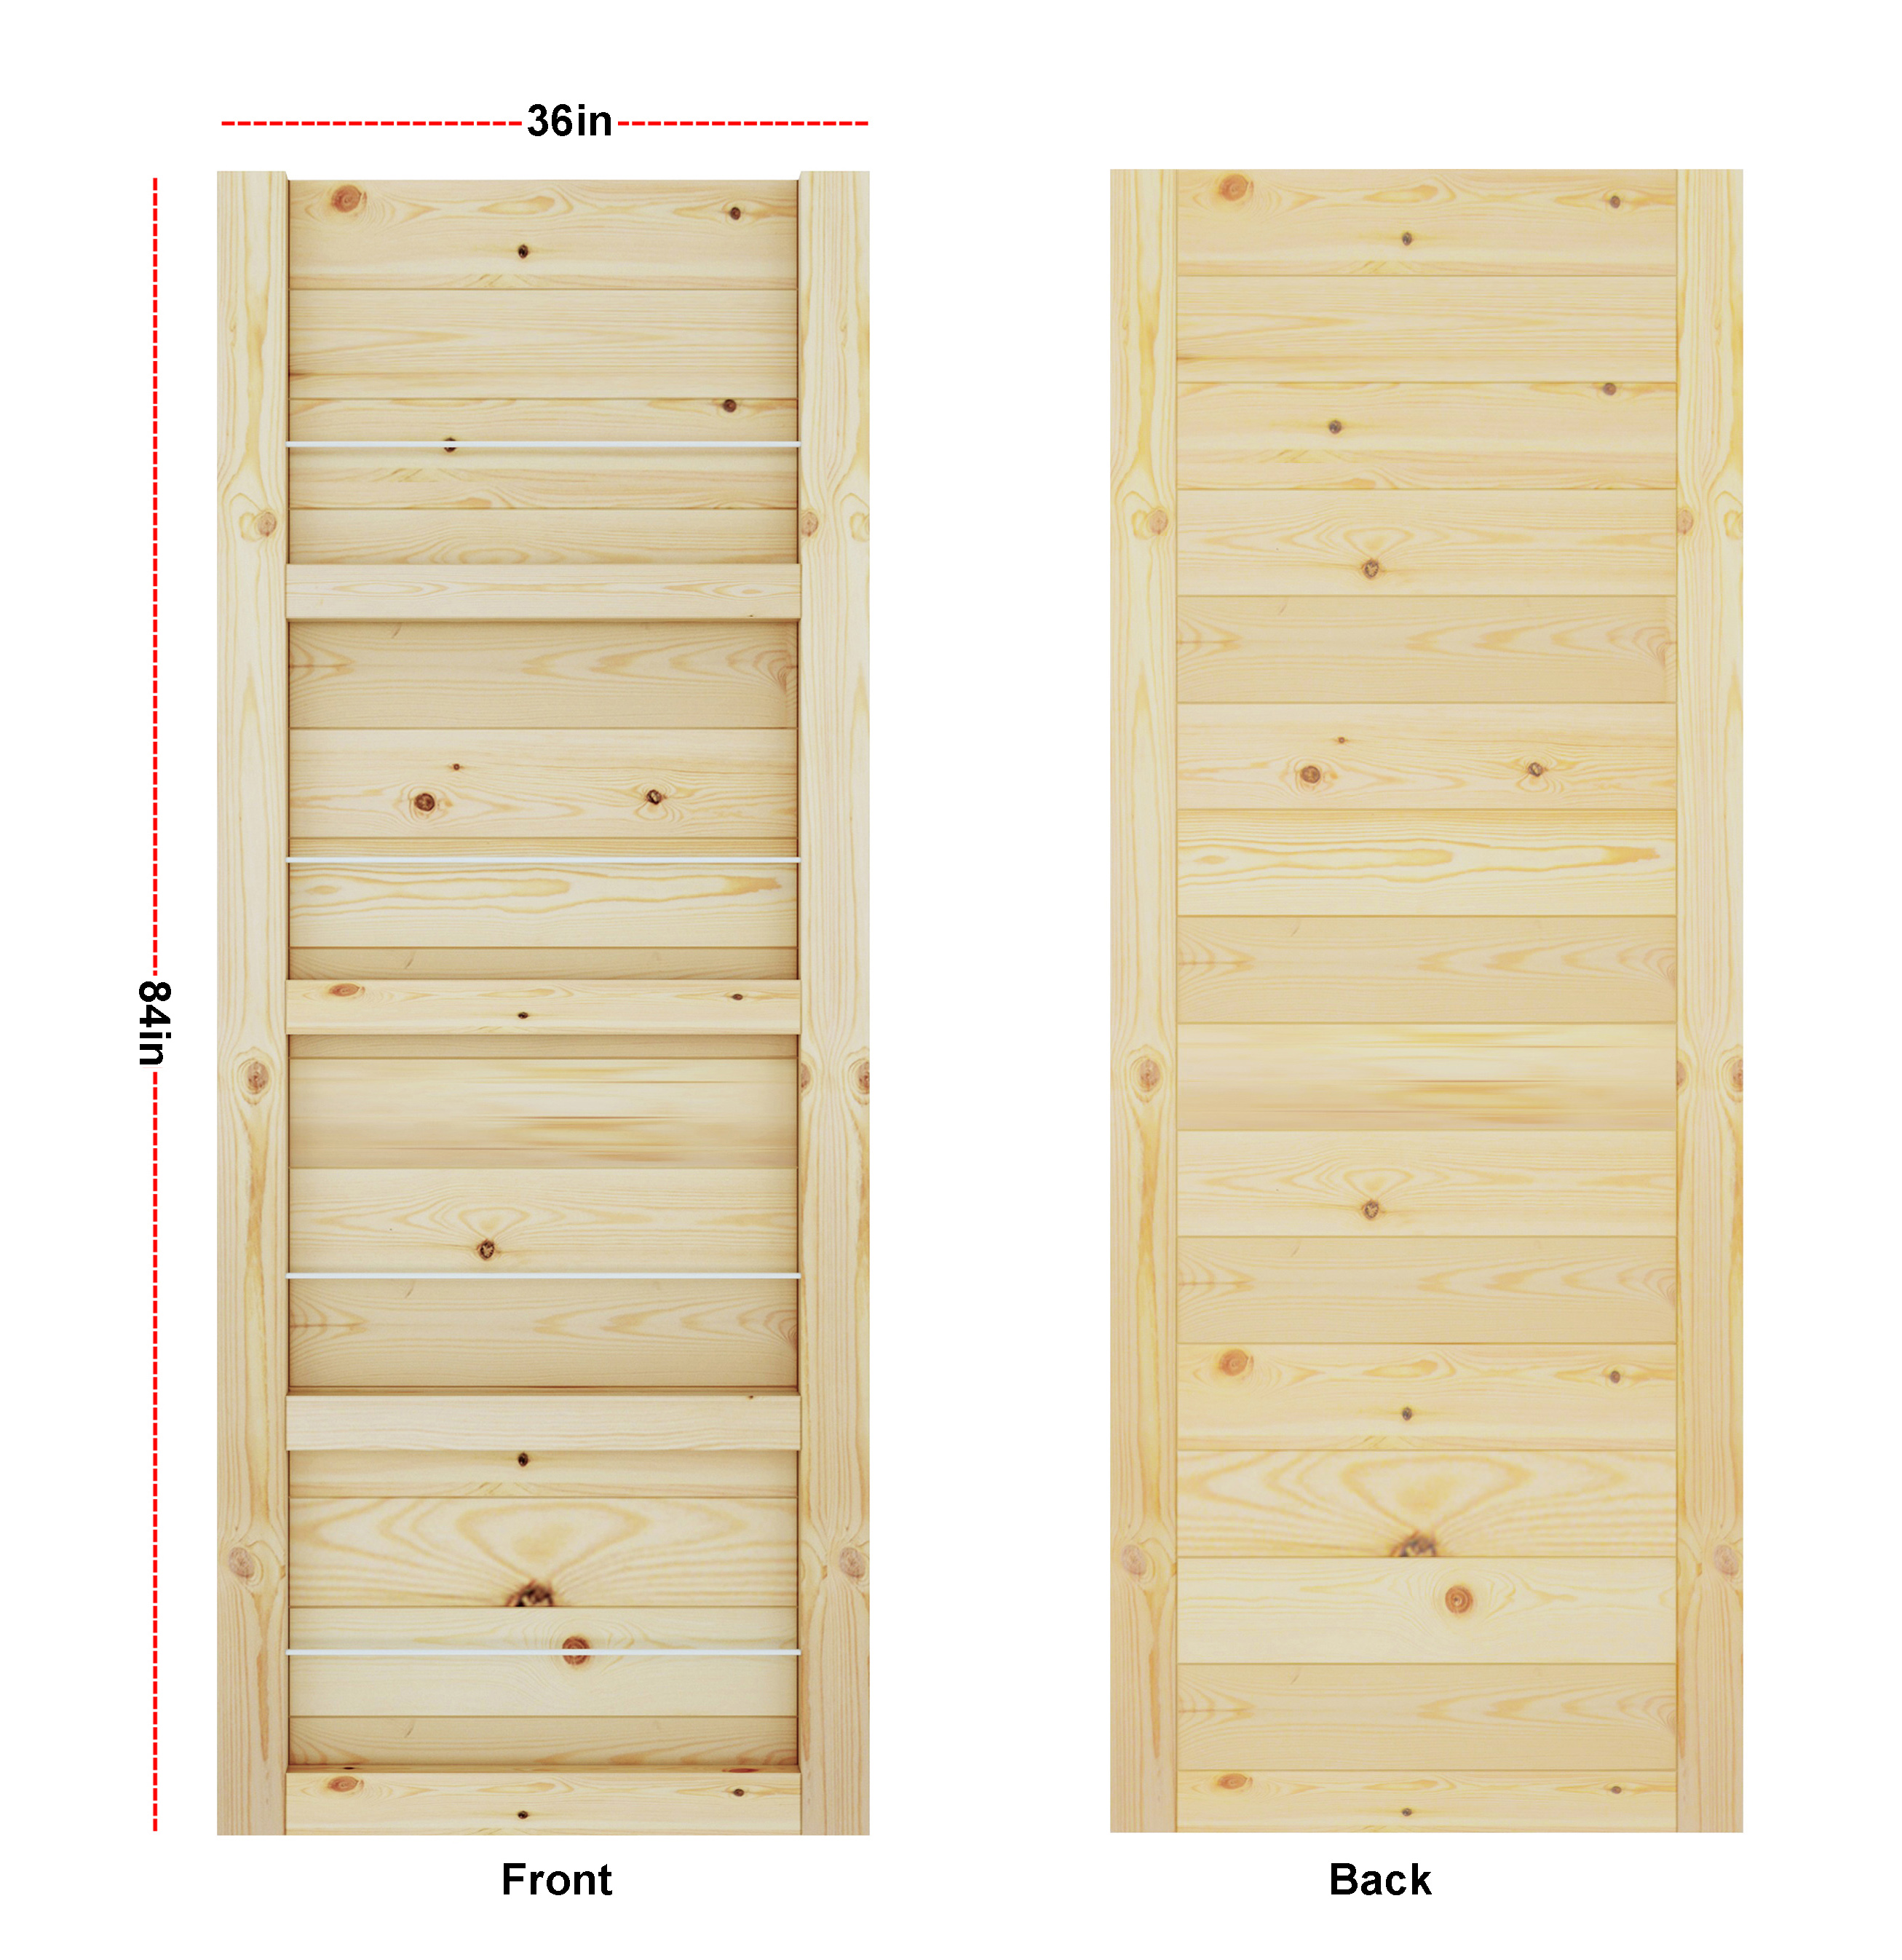 DIYHD Barn Door Slab Knotty Pine Wood Door Panel Loft Style 2 3/4